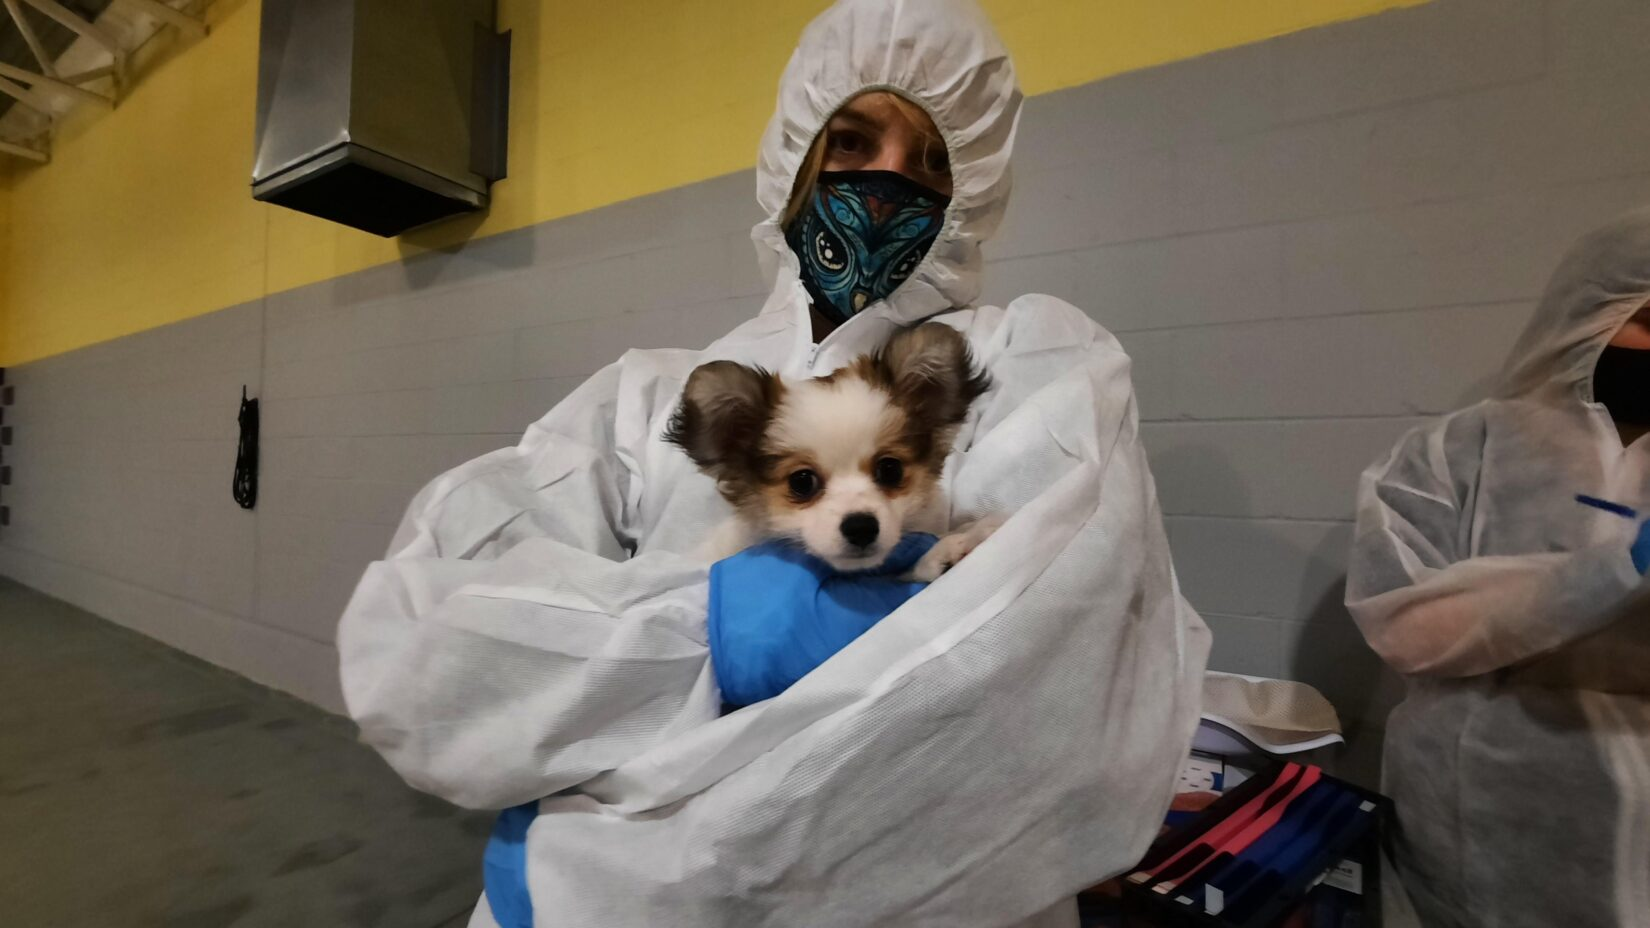 Seized puppy being help by staff in PPE- intake